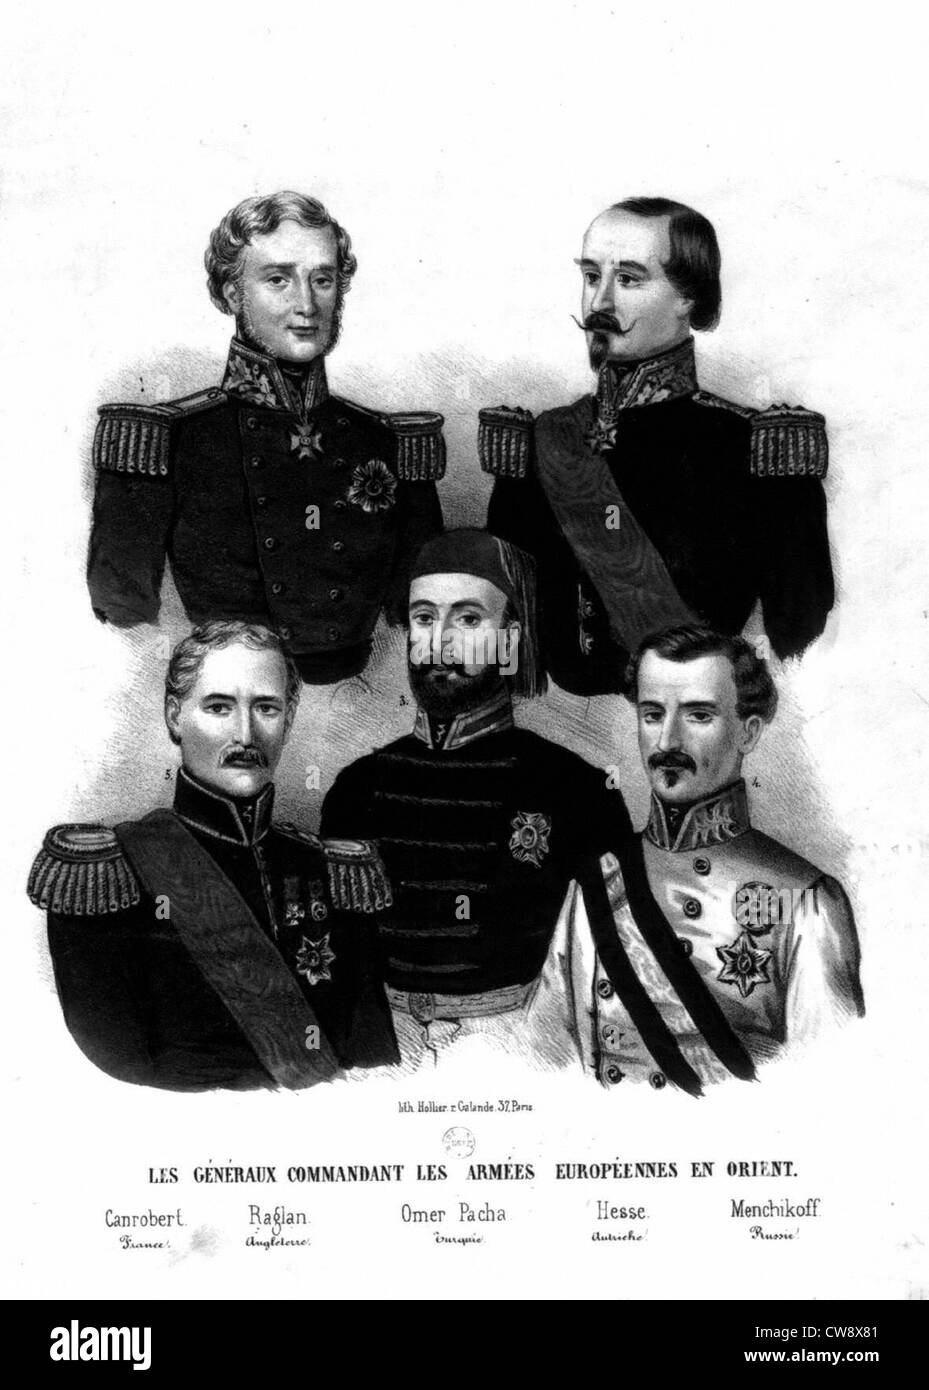 Generals of the European armies - Stock Image